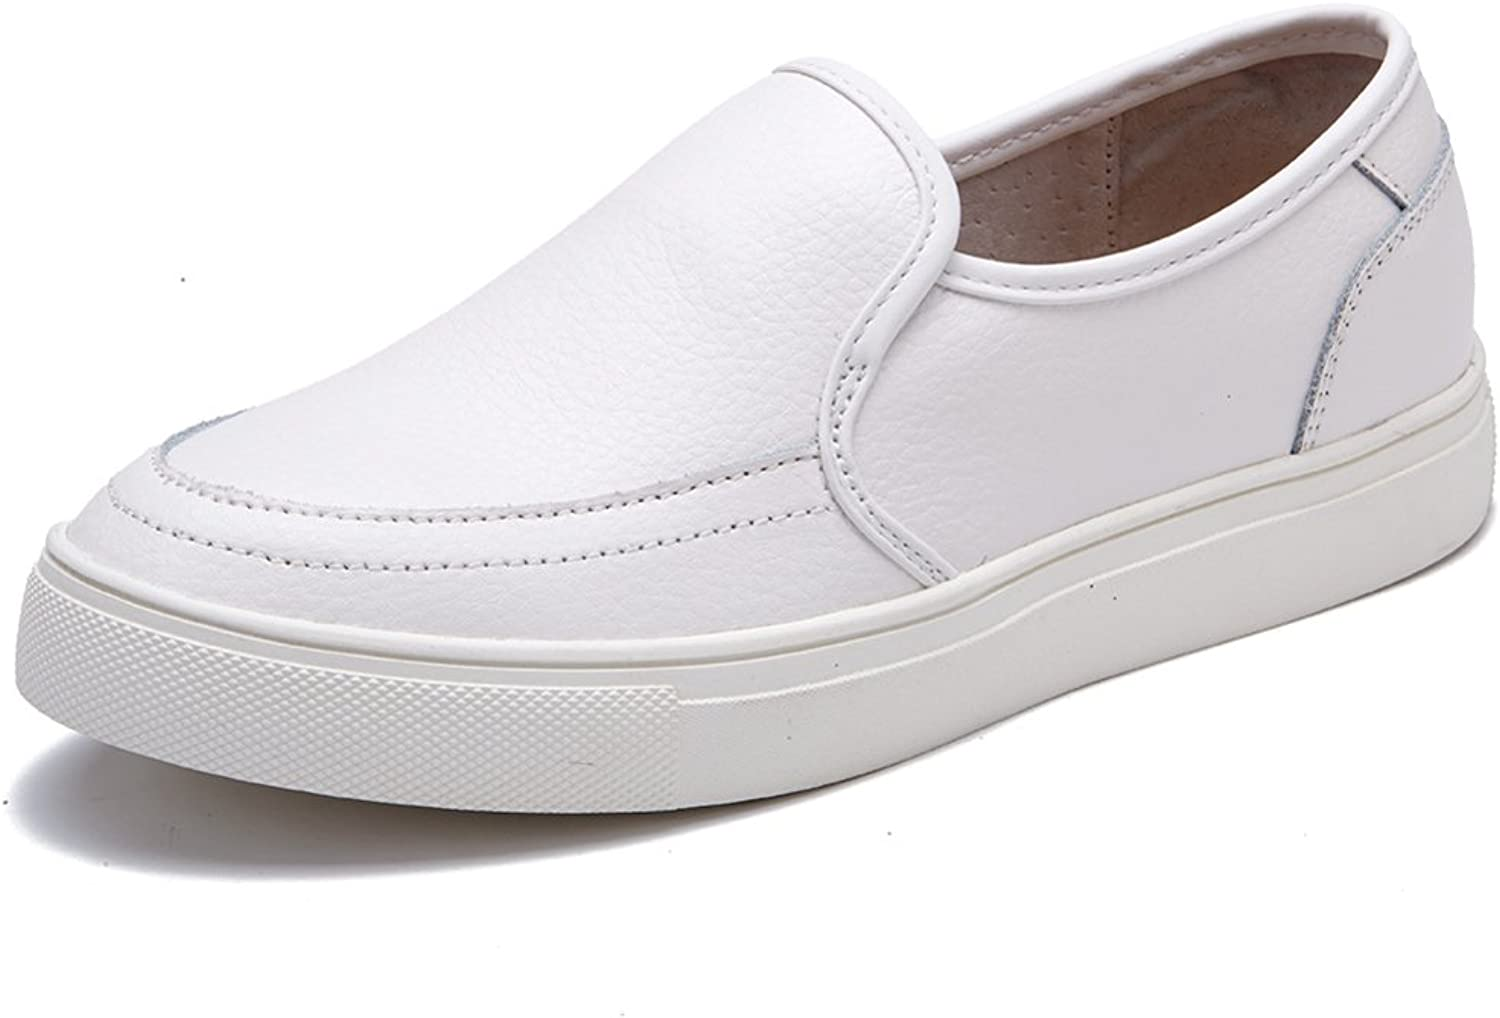 Bhujfufgv Flat Casual Women shoes Slip-on Man shoes